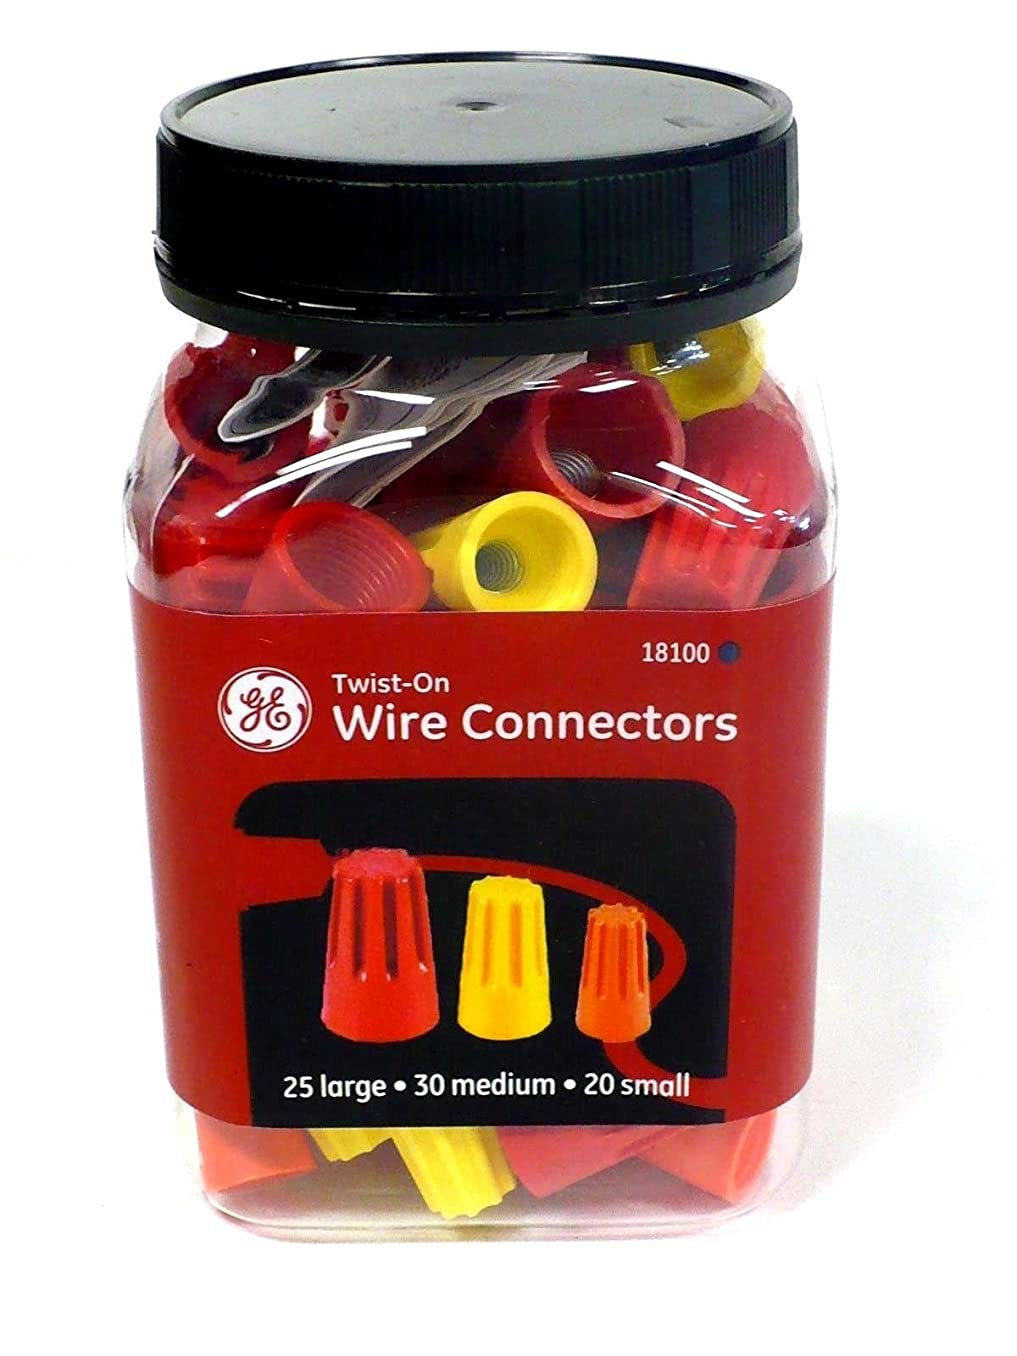 GE Wire Connectors, Twist-On Assorted Sizes, 75 Per Pack 18100